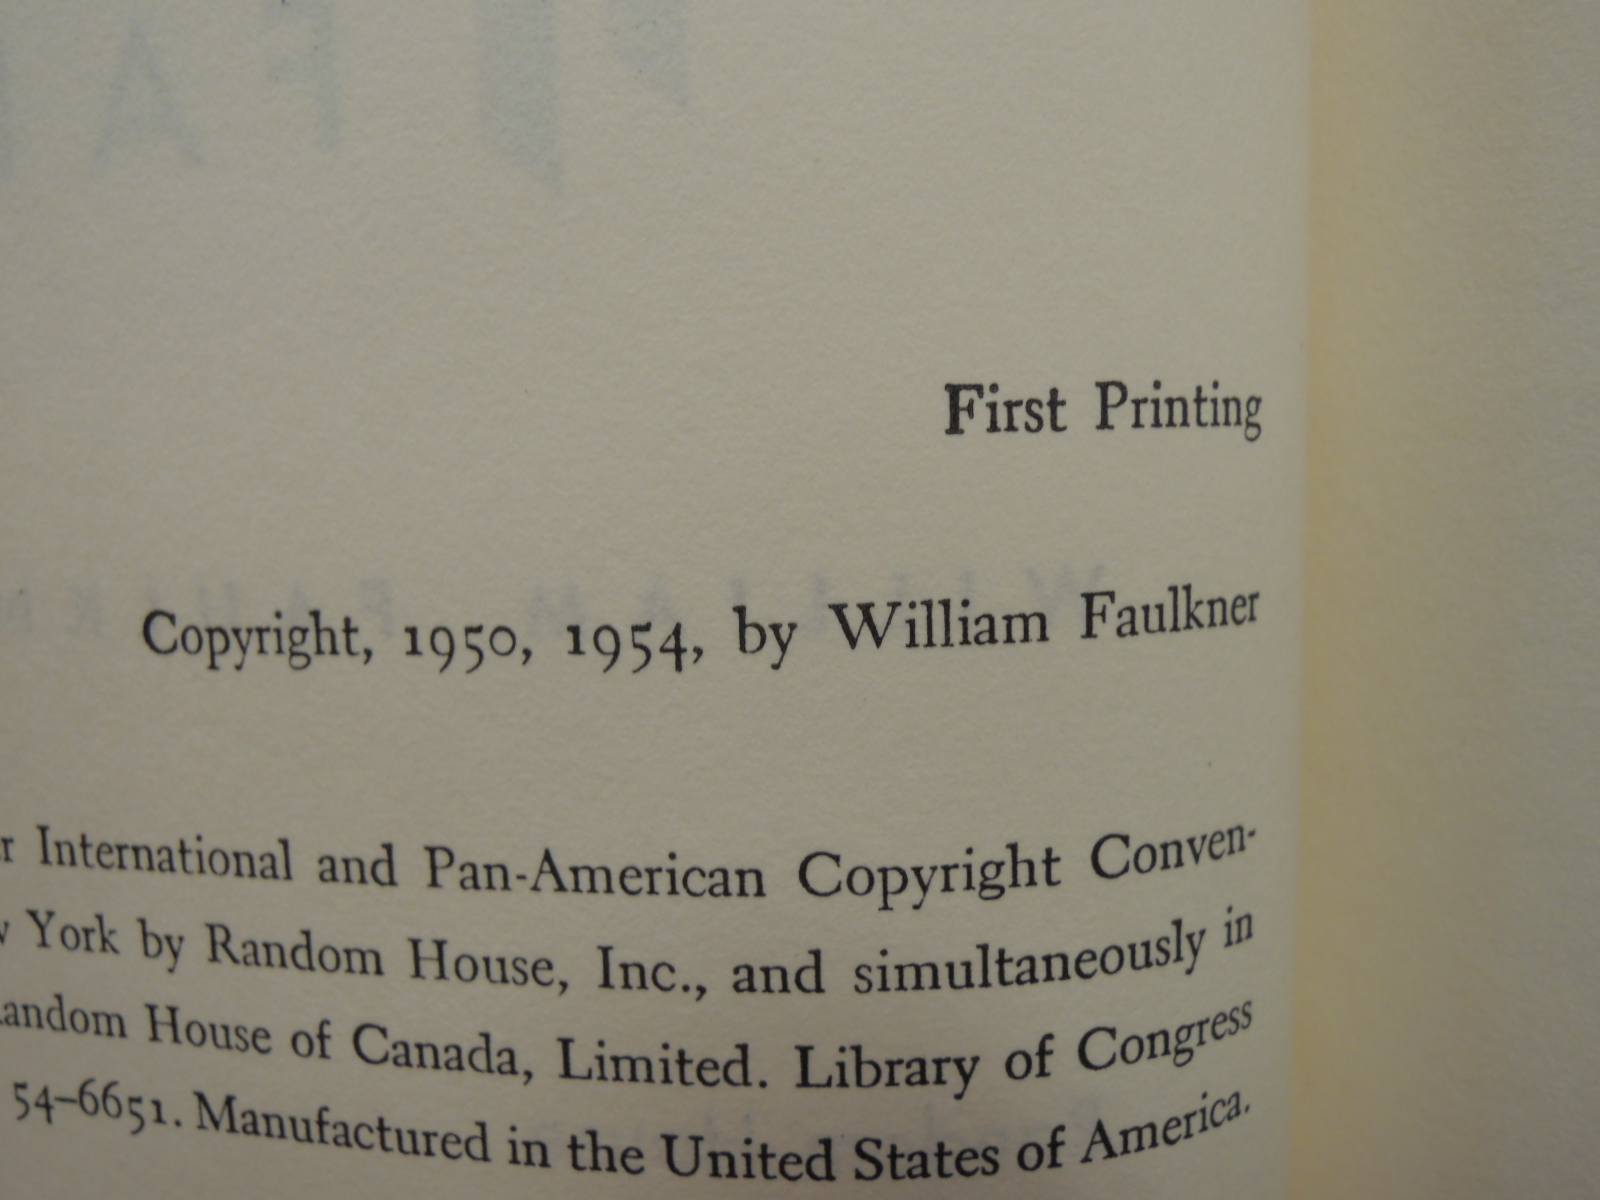 Faulkner, William: A FABLE SIGNED by William Faulkner